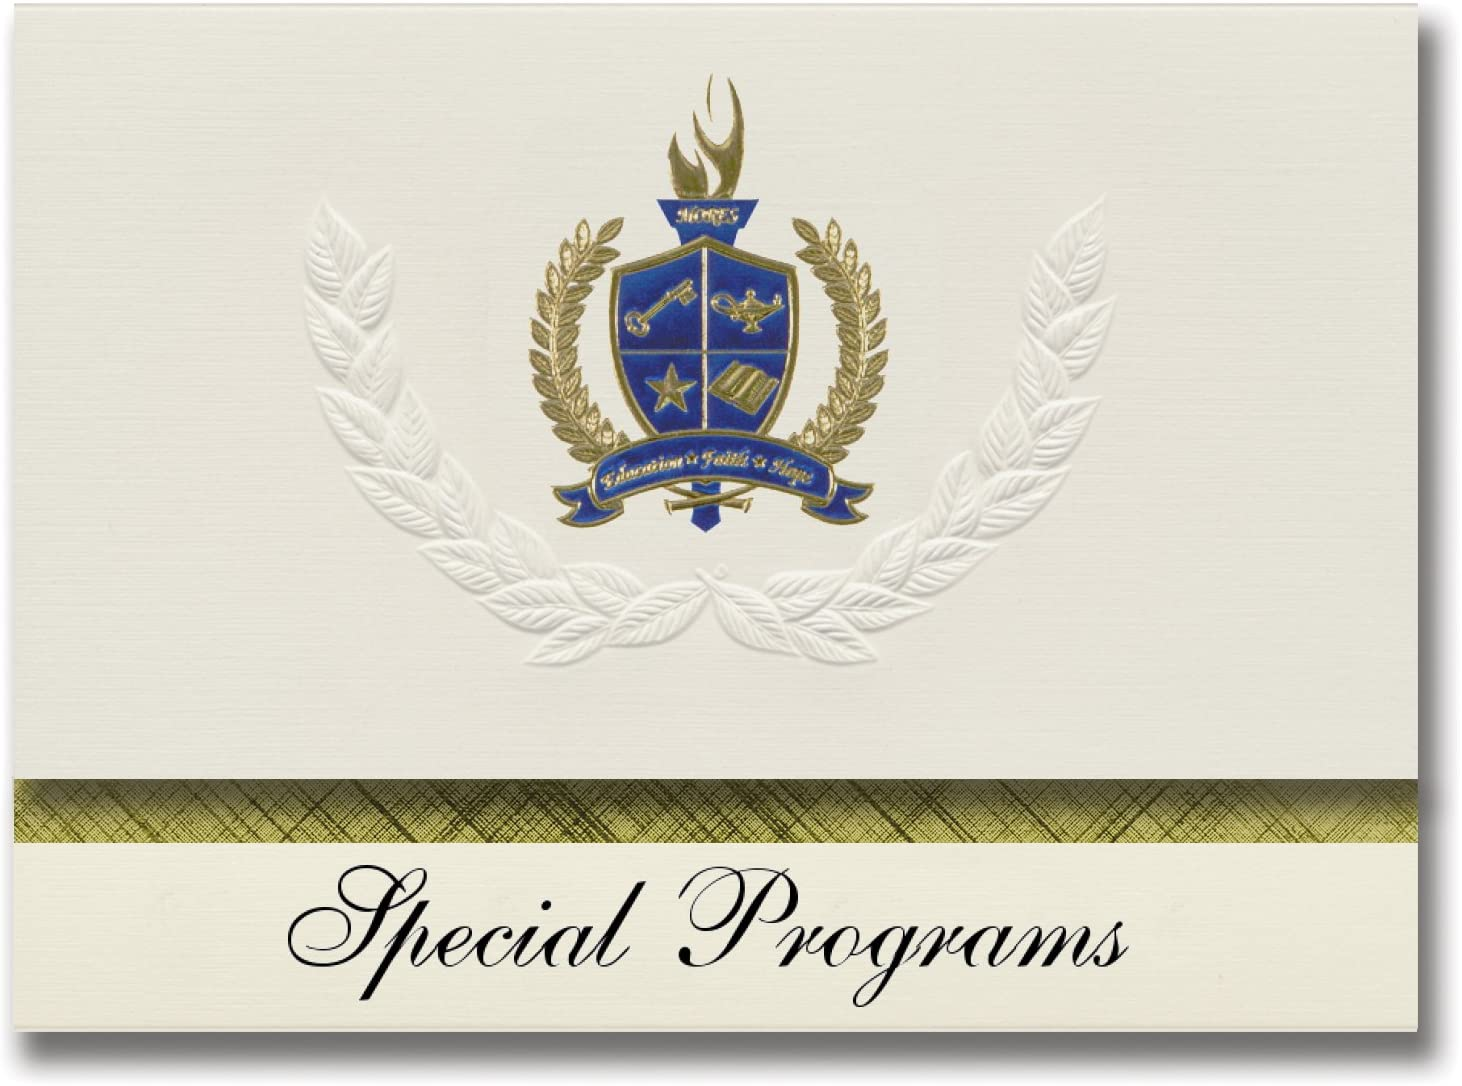 Signature Announcements Special Programs (Richland, WA) Graduation Announcements, Presidential style, Elite package of 25 with Gold & Blue Metallic Foil seal